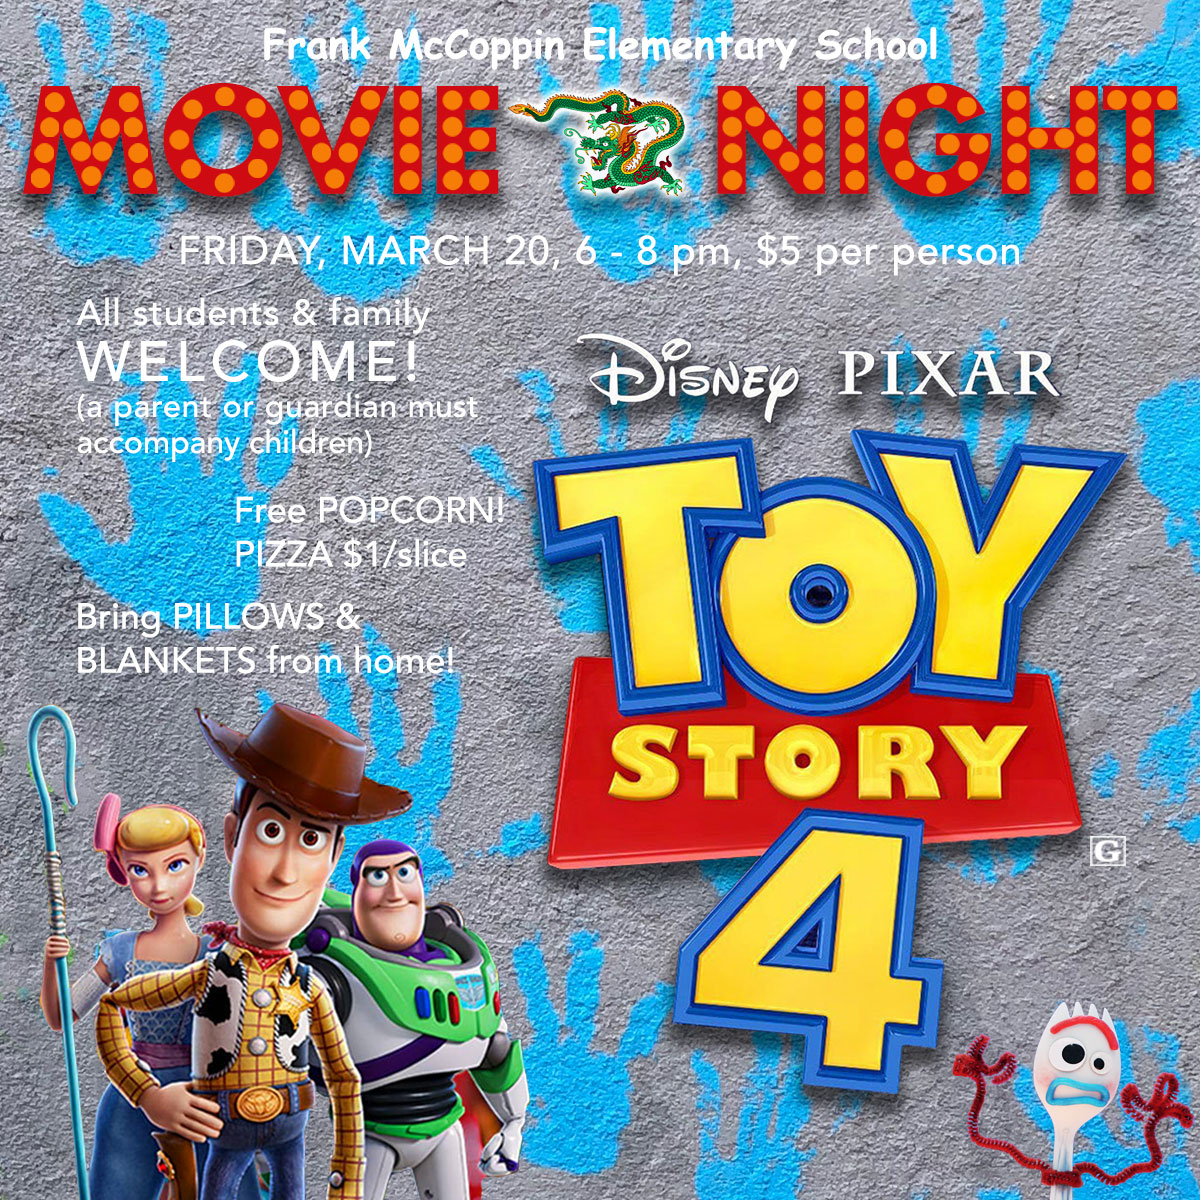 Movie night, featuring Toy Story 4, on 3/20/20